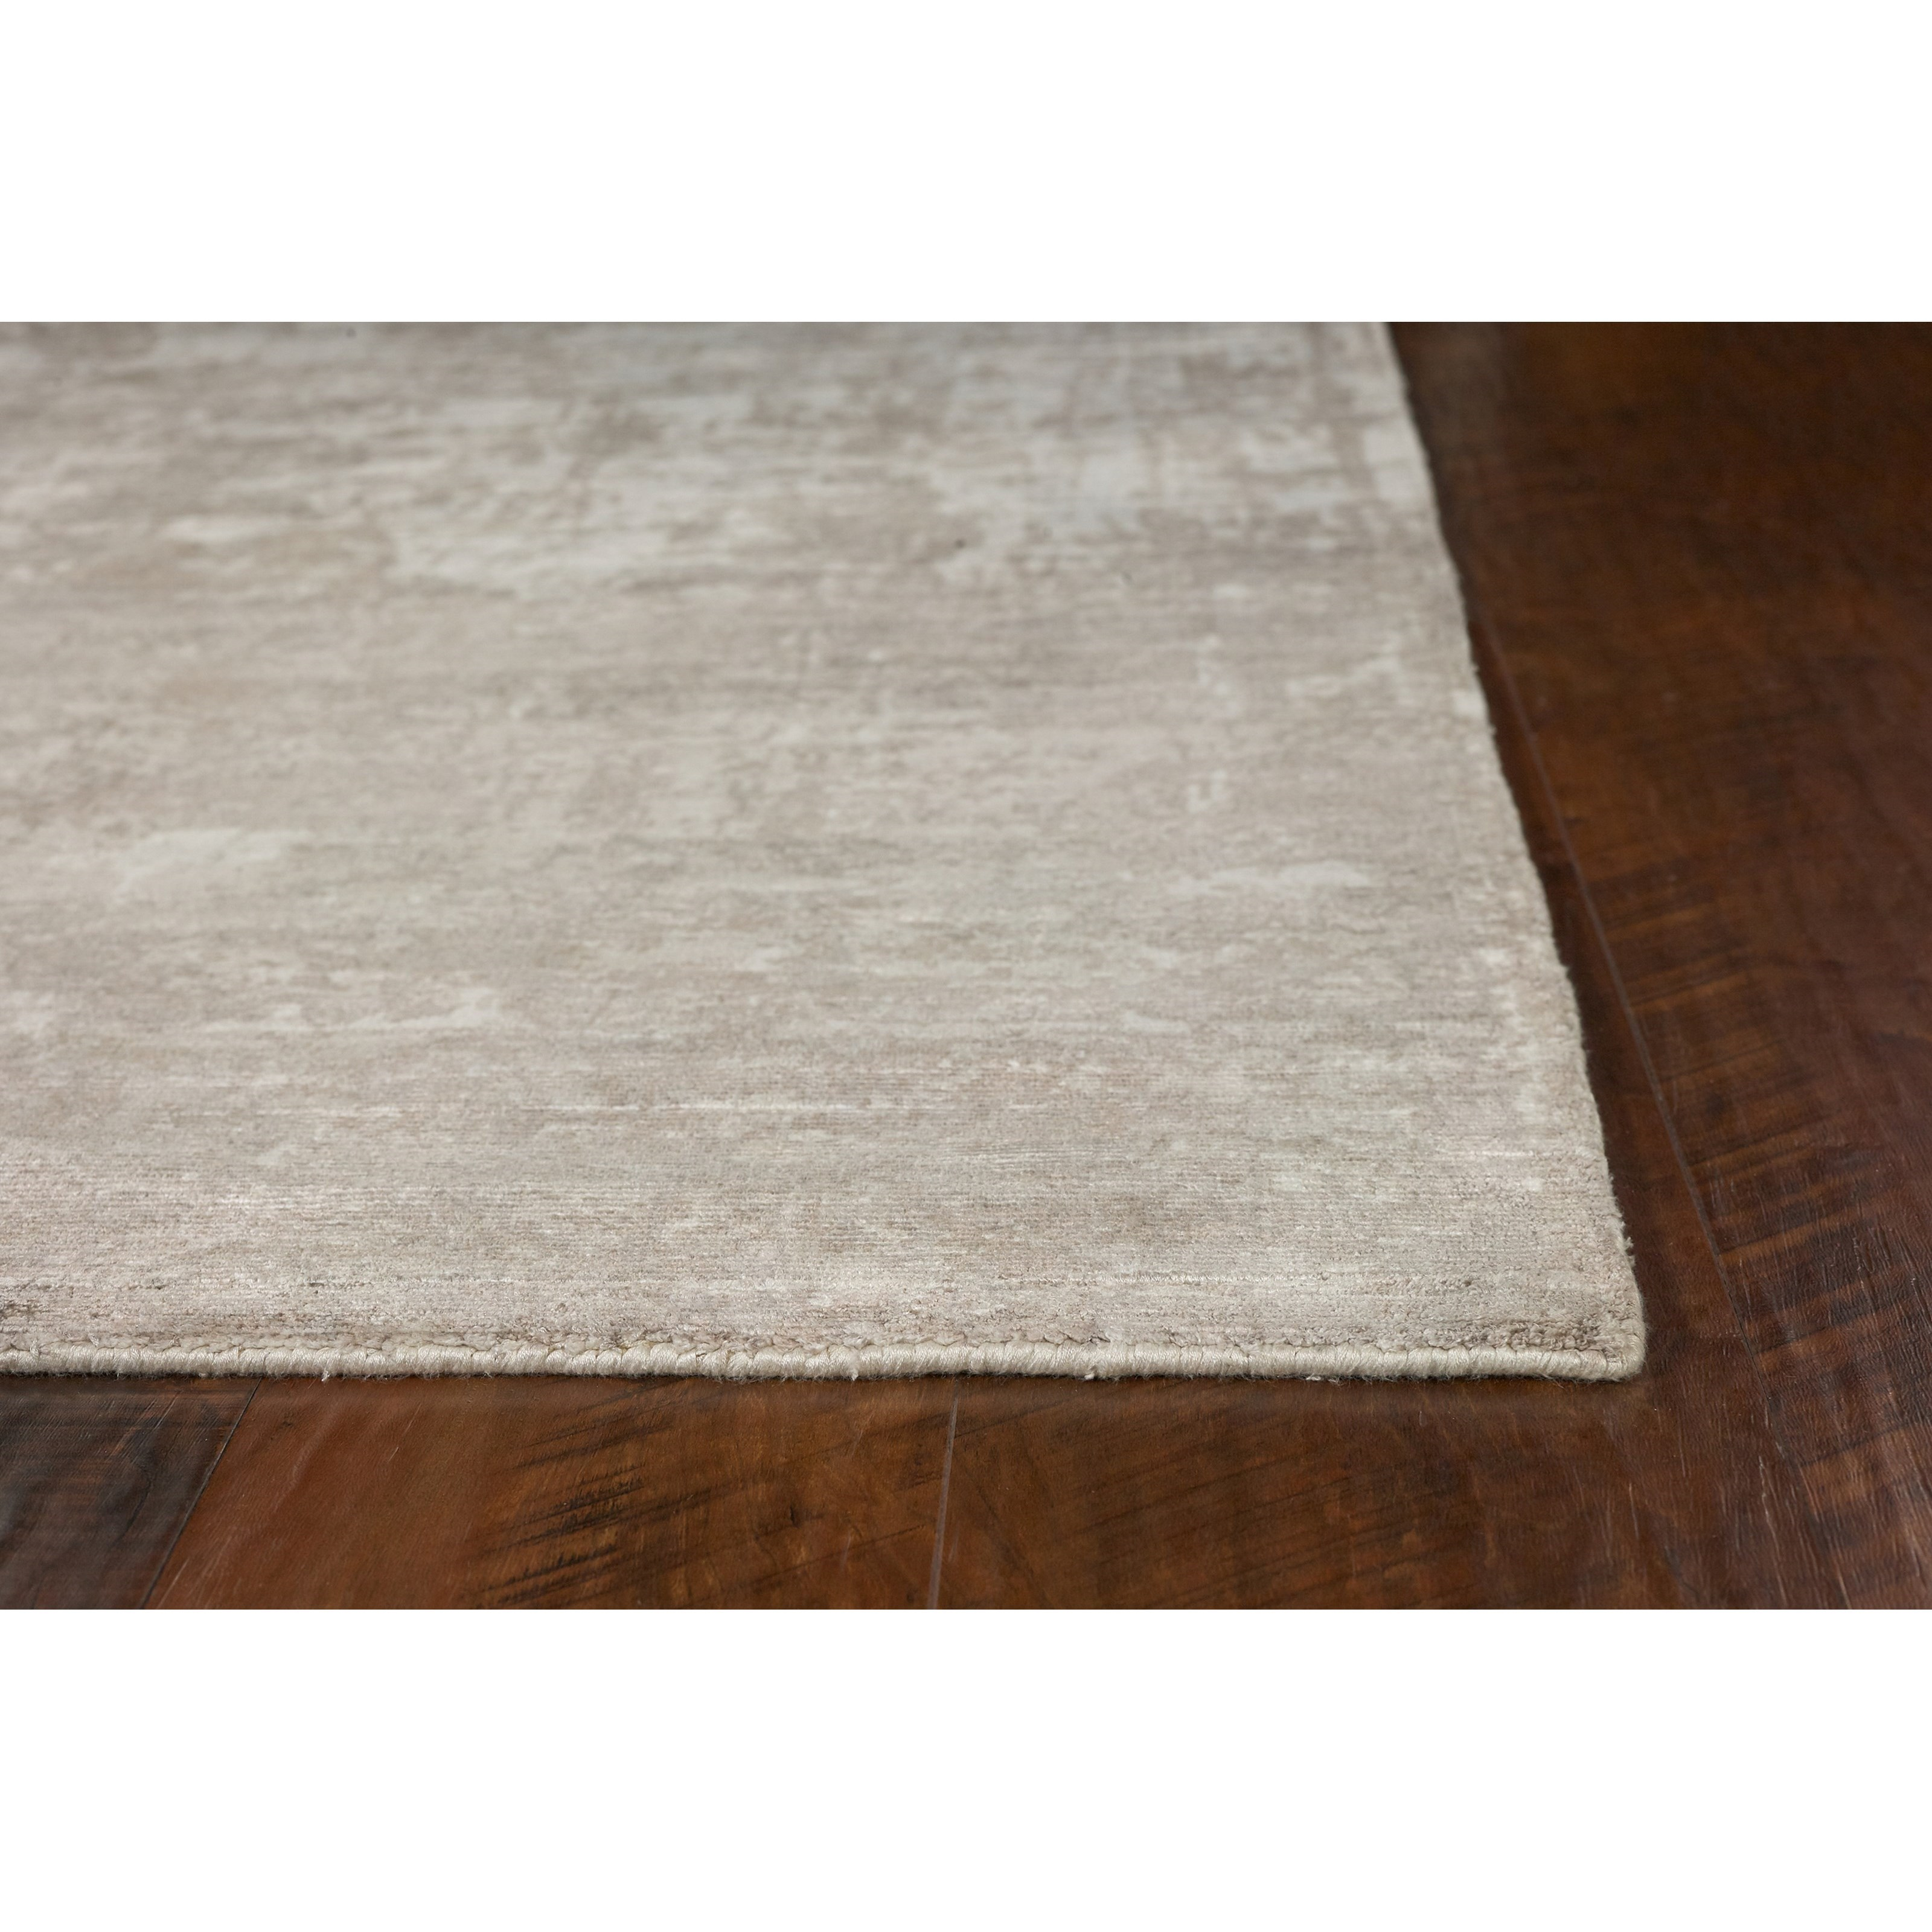 Indulge 7' X 5' Area Rug by Kas at Zak's Home